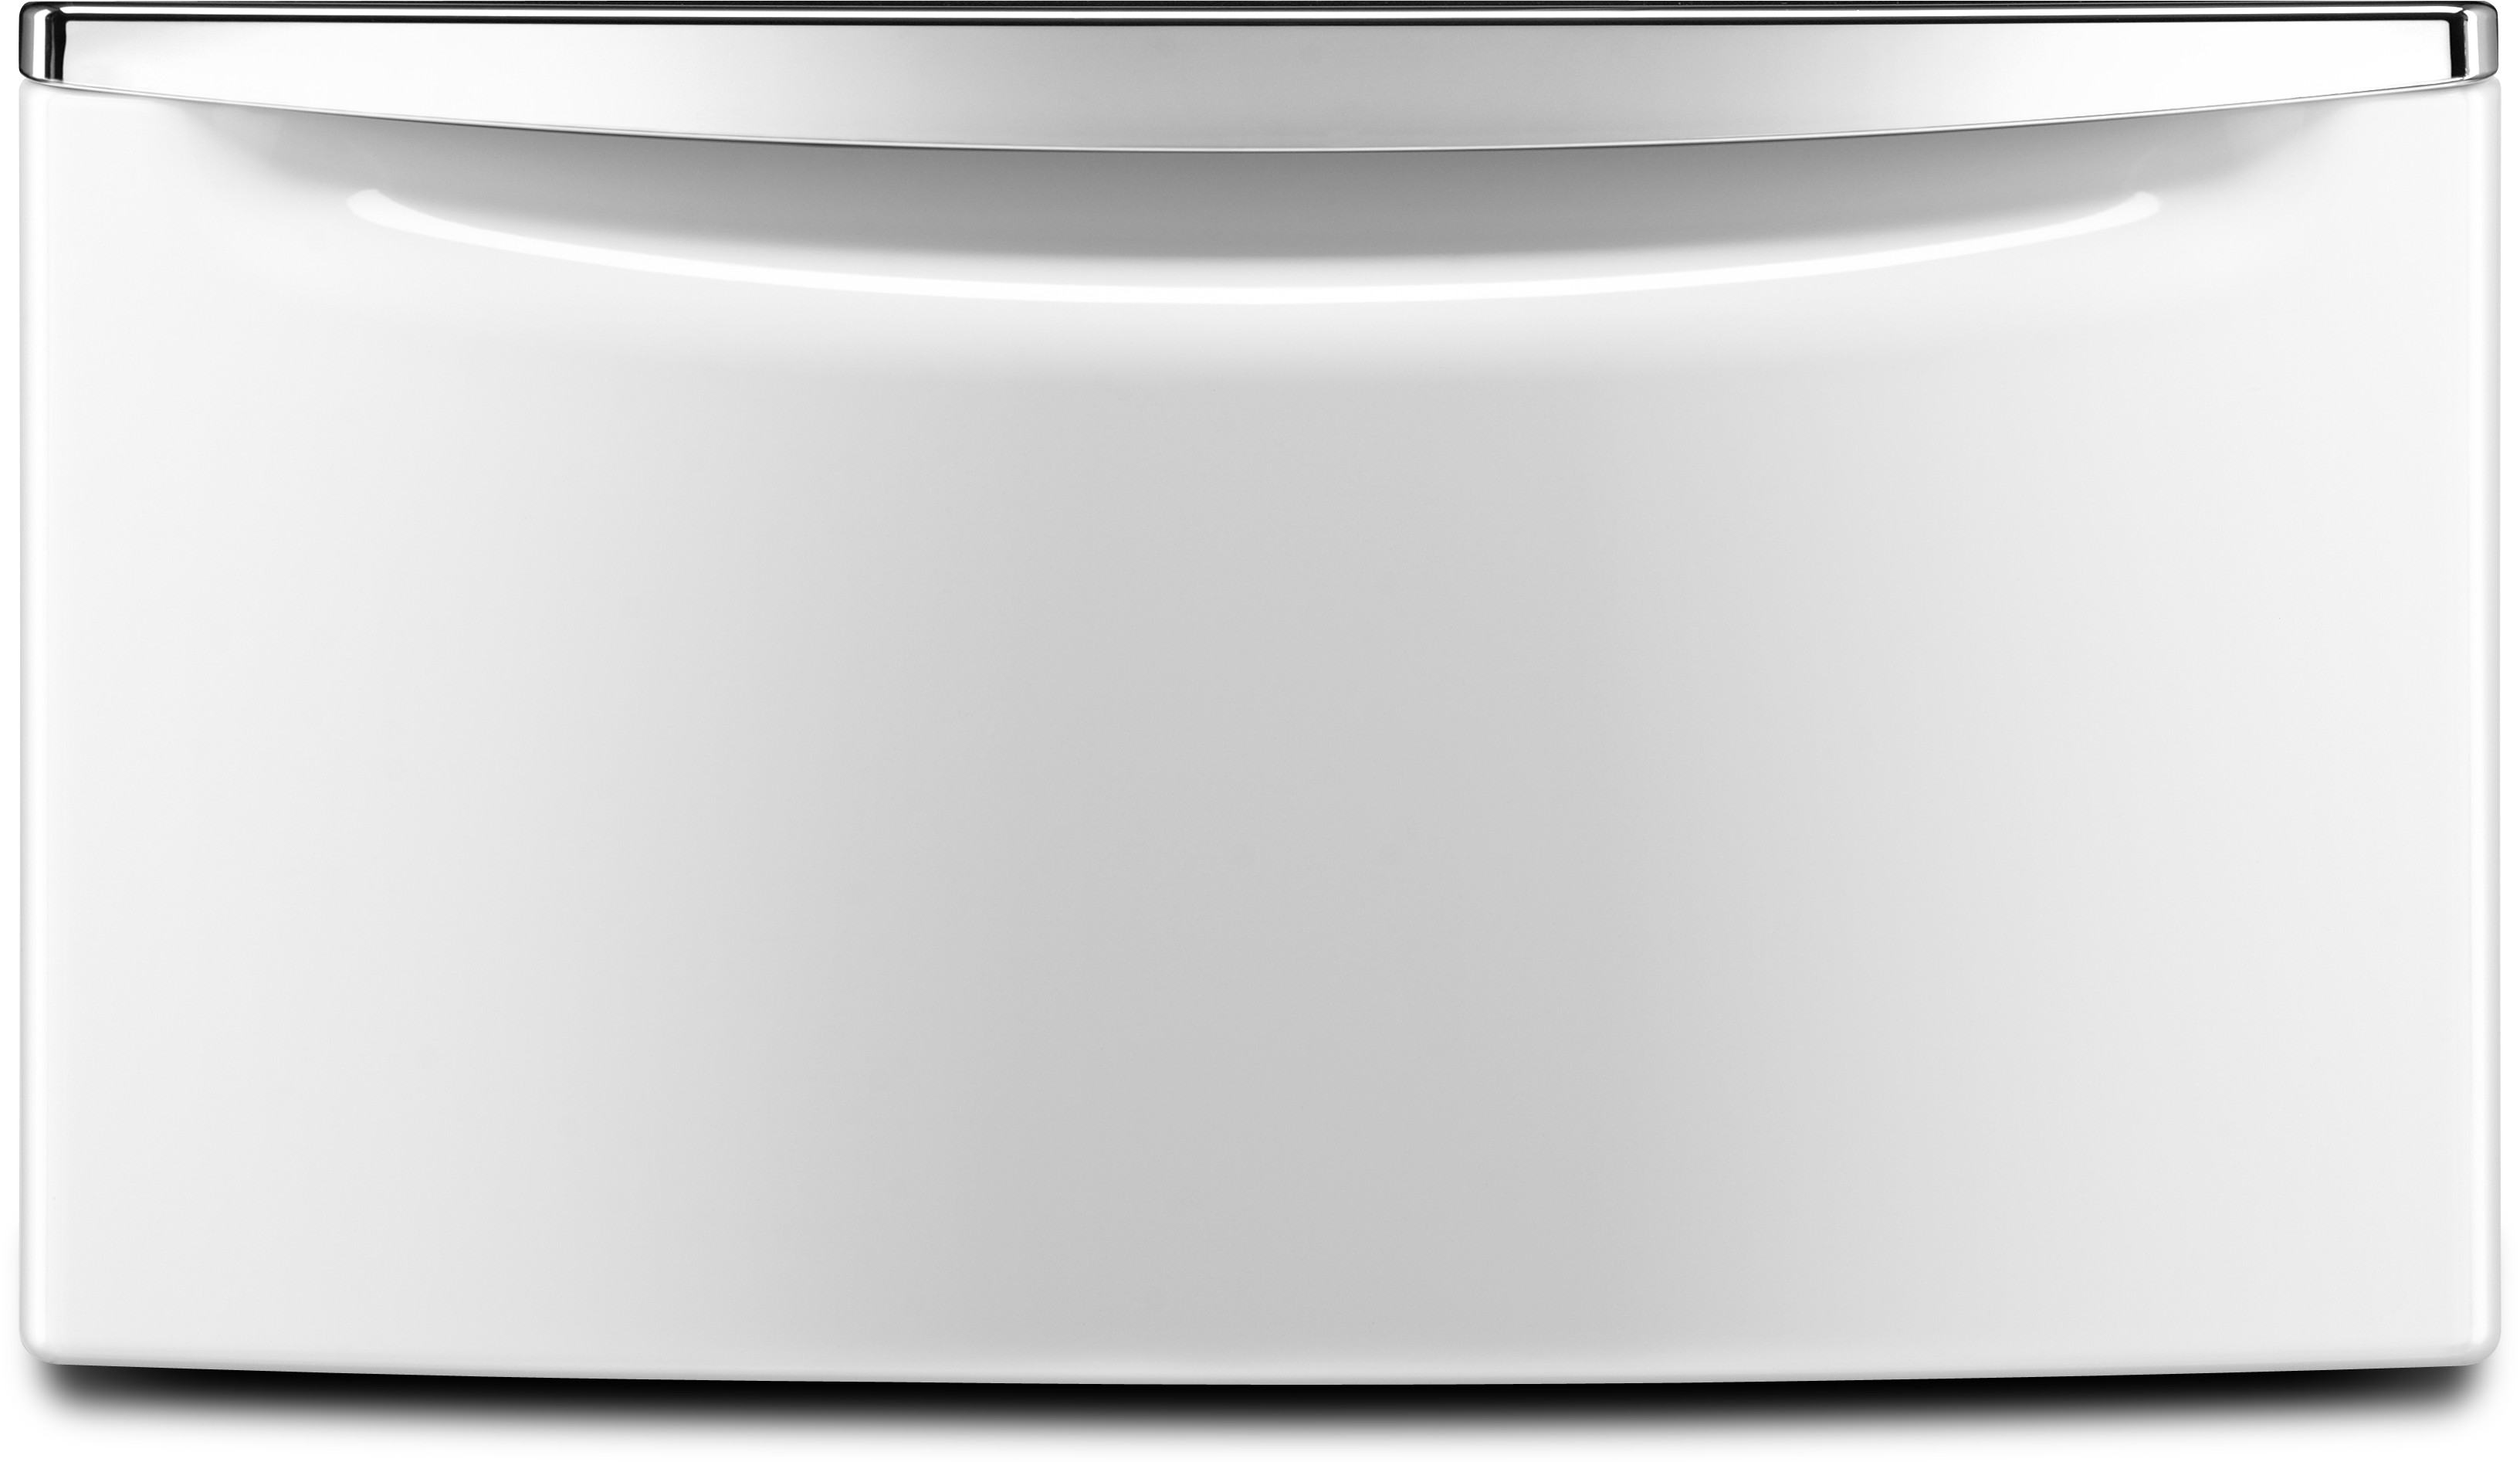 neptune designed all cgi inch ajmadison cob maytag washers bin for series pedestal view